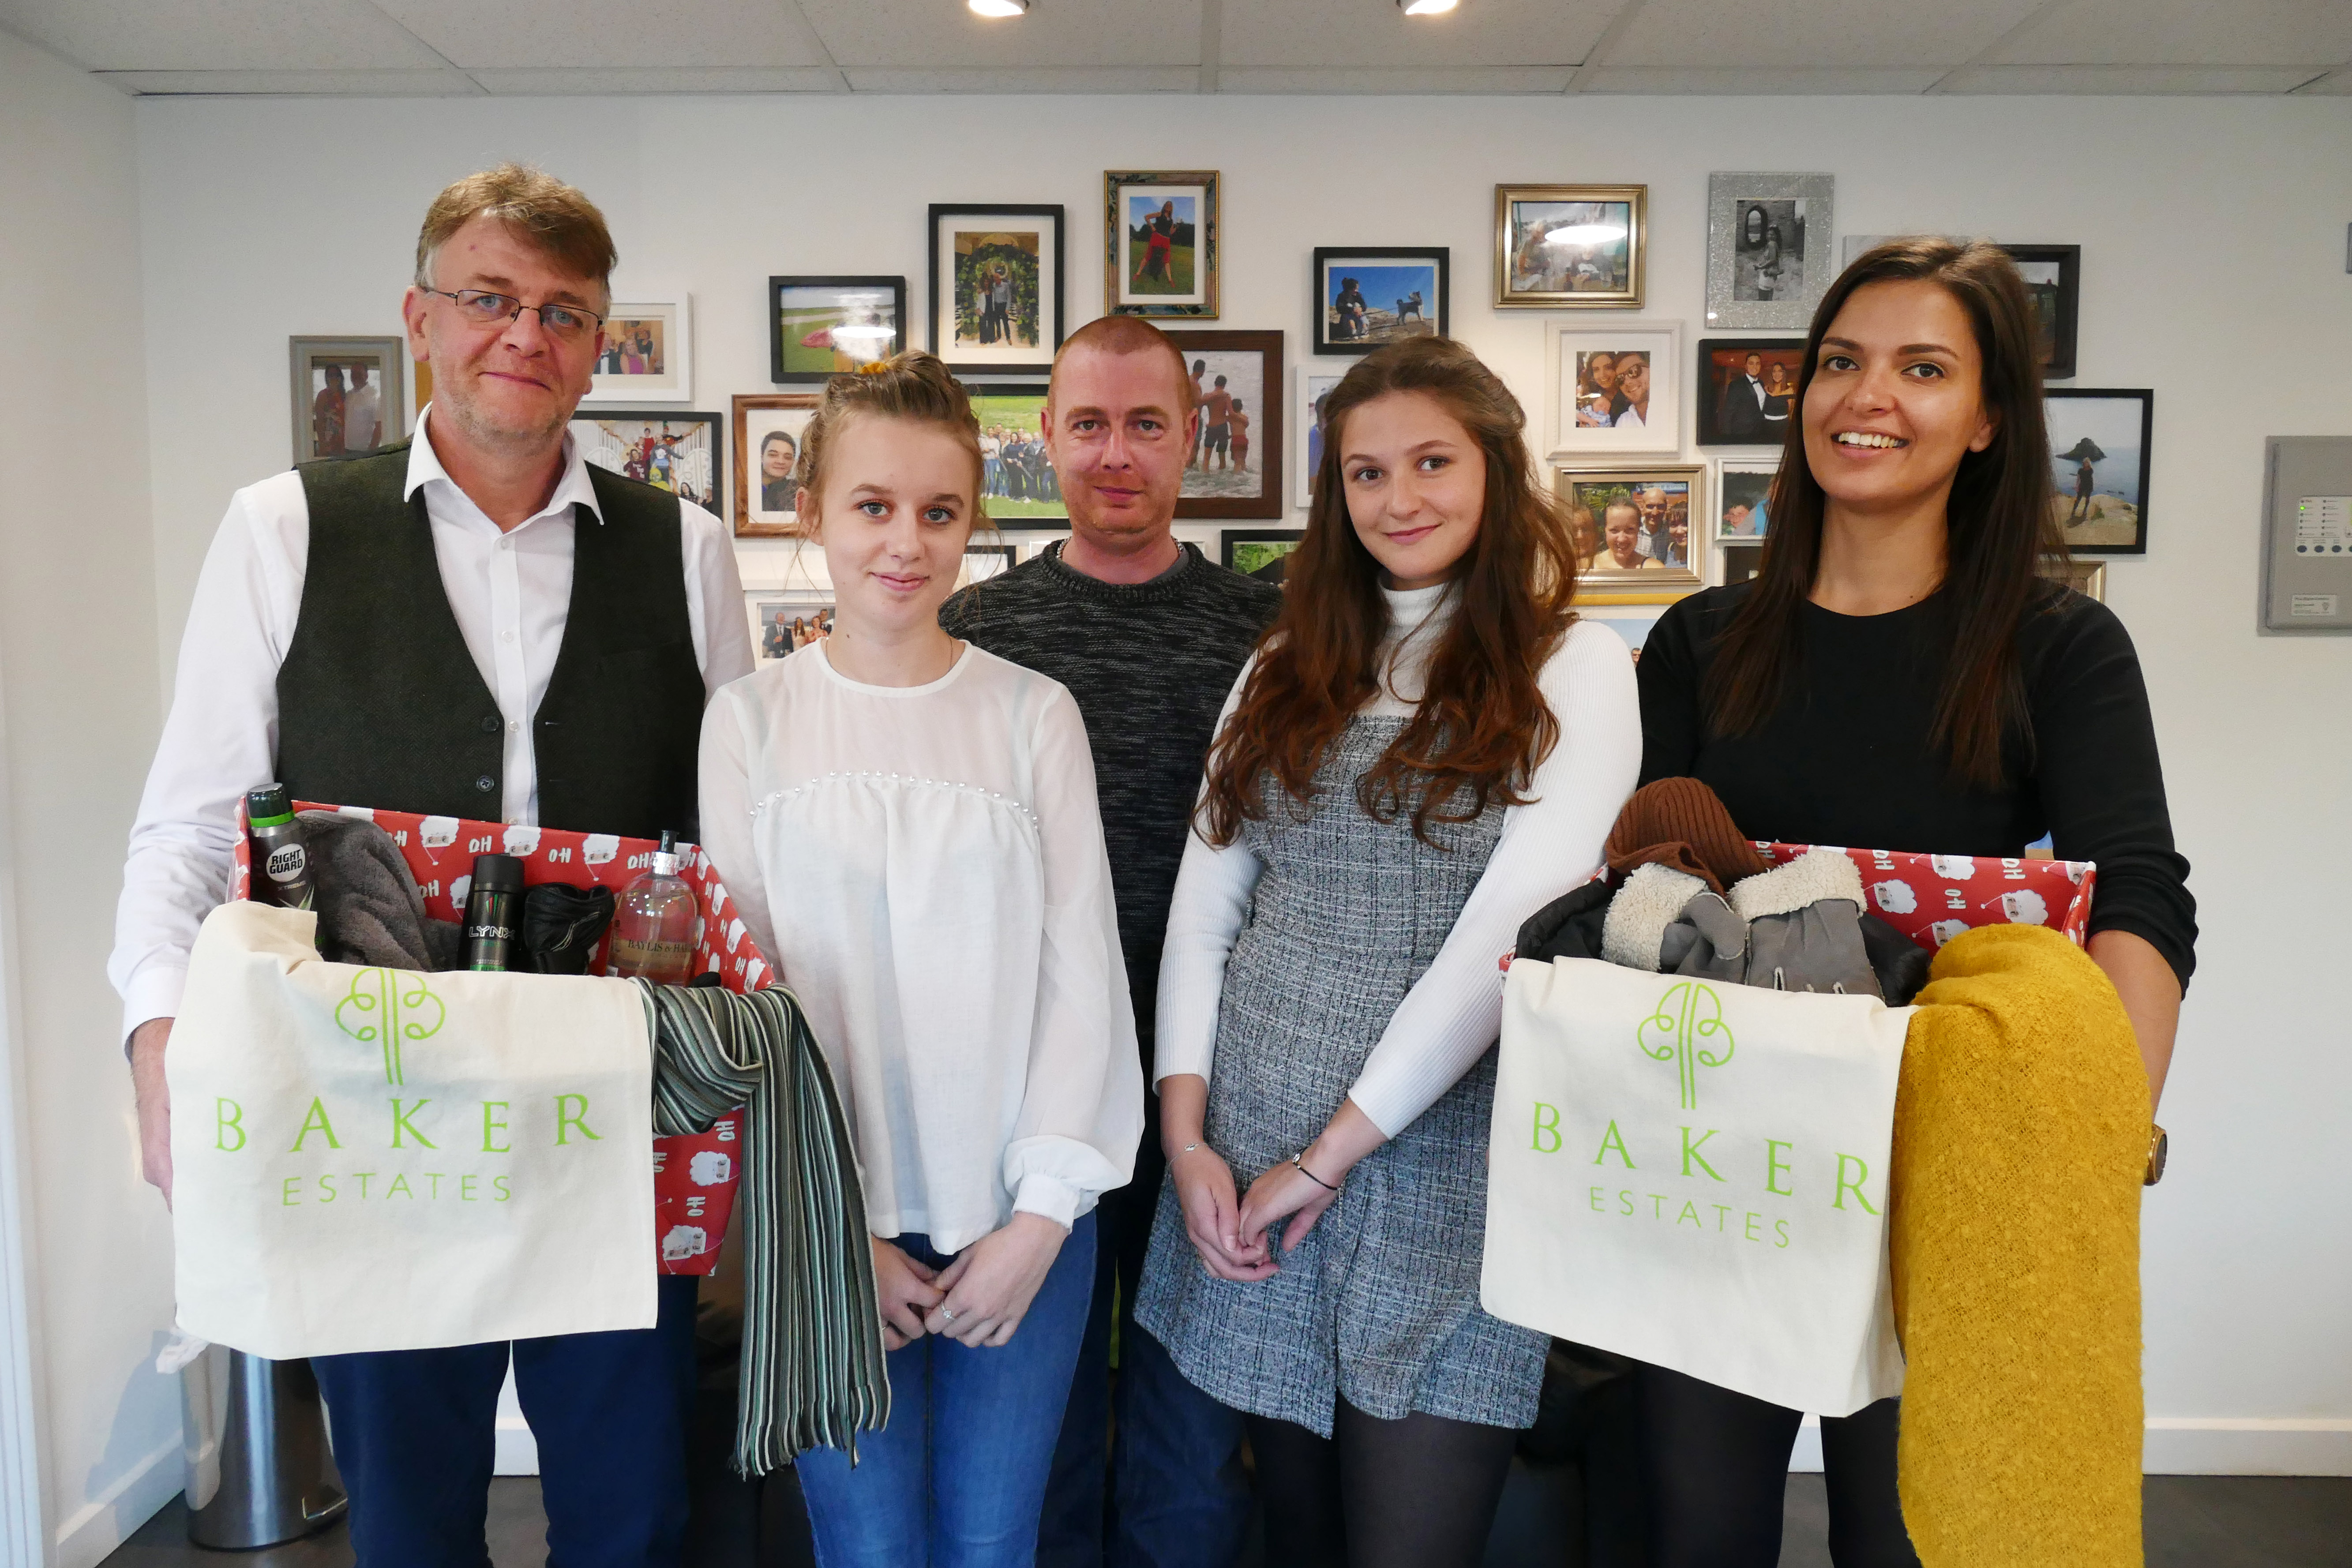 Baker Estates appeals to charities to come forward to take a share of £2,000 pledged to help the homeless this Winter